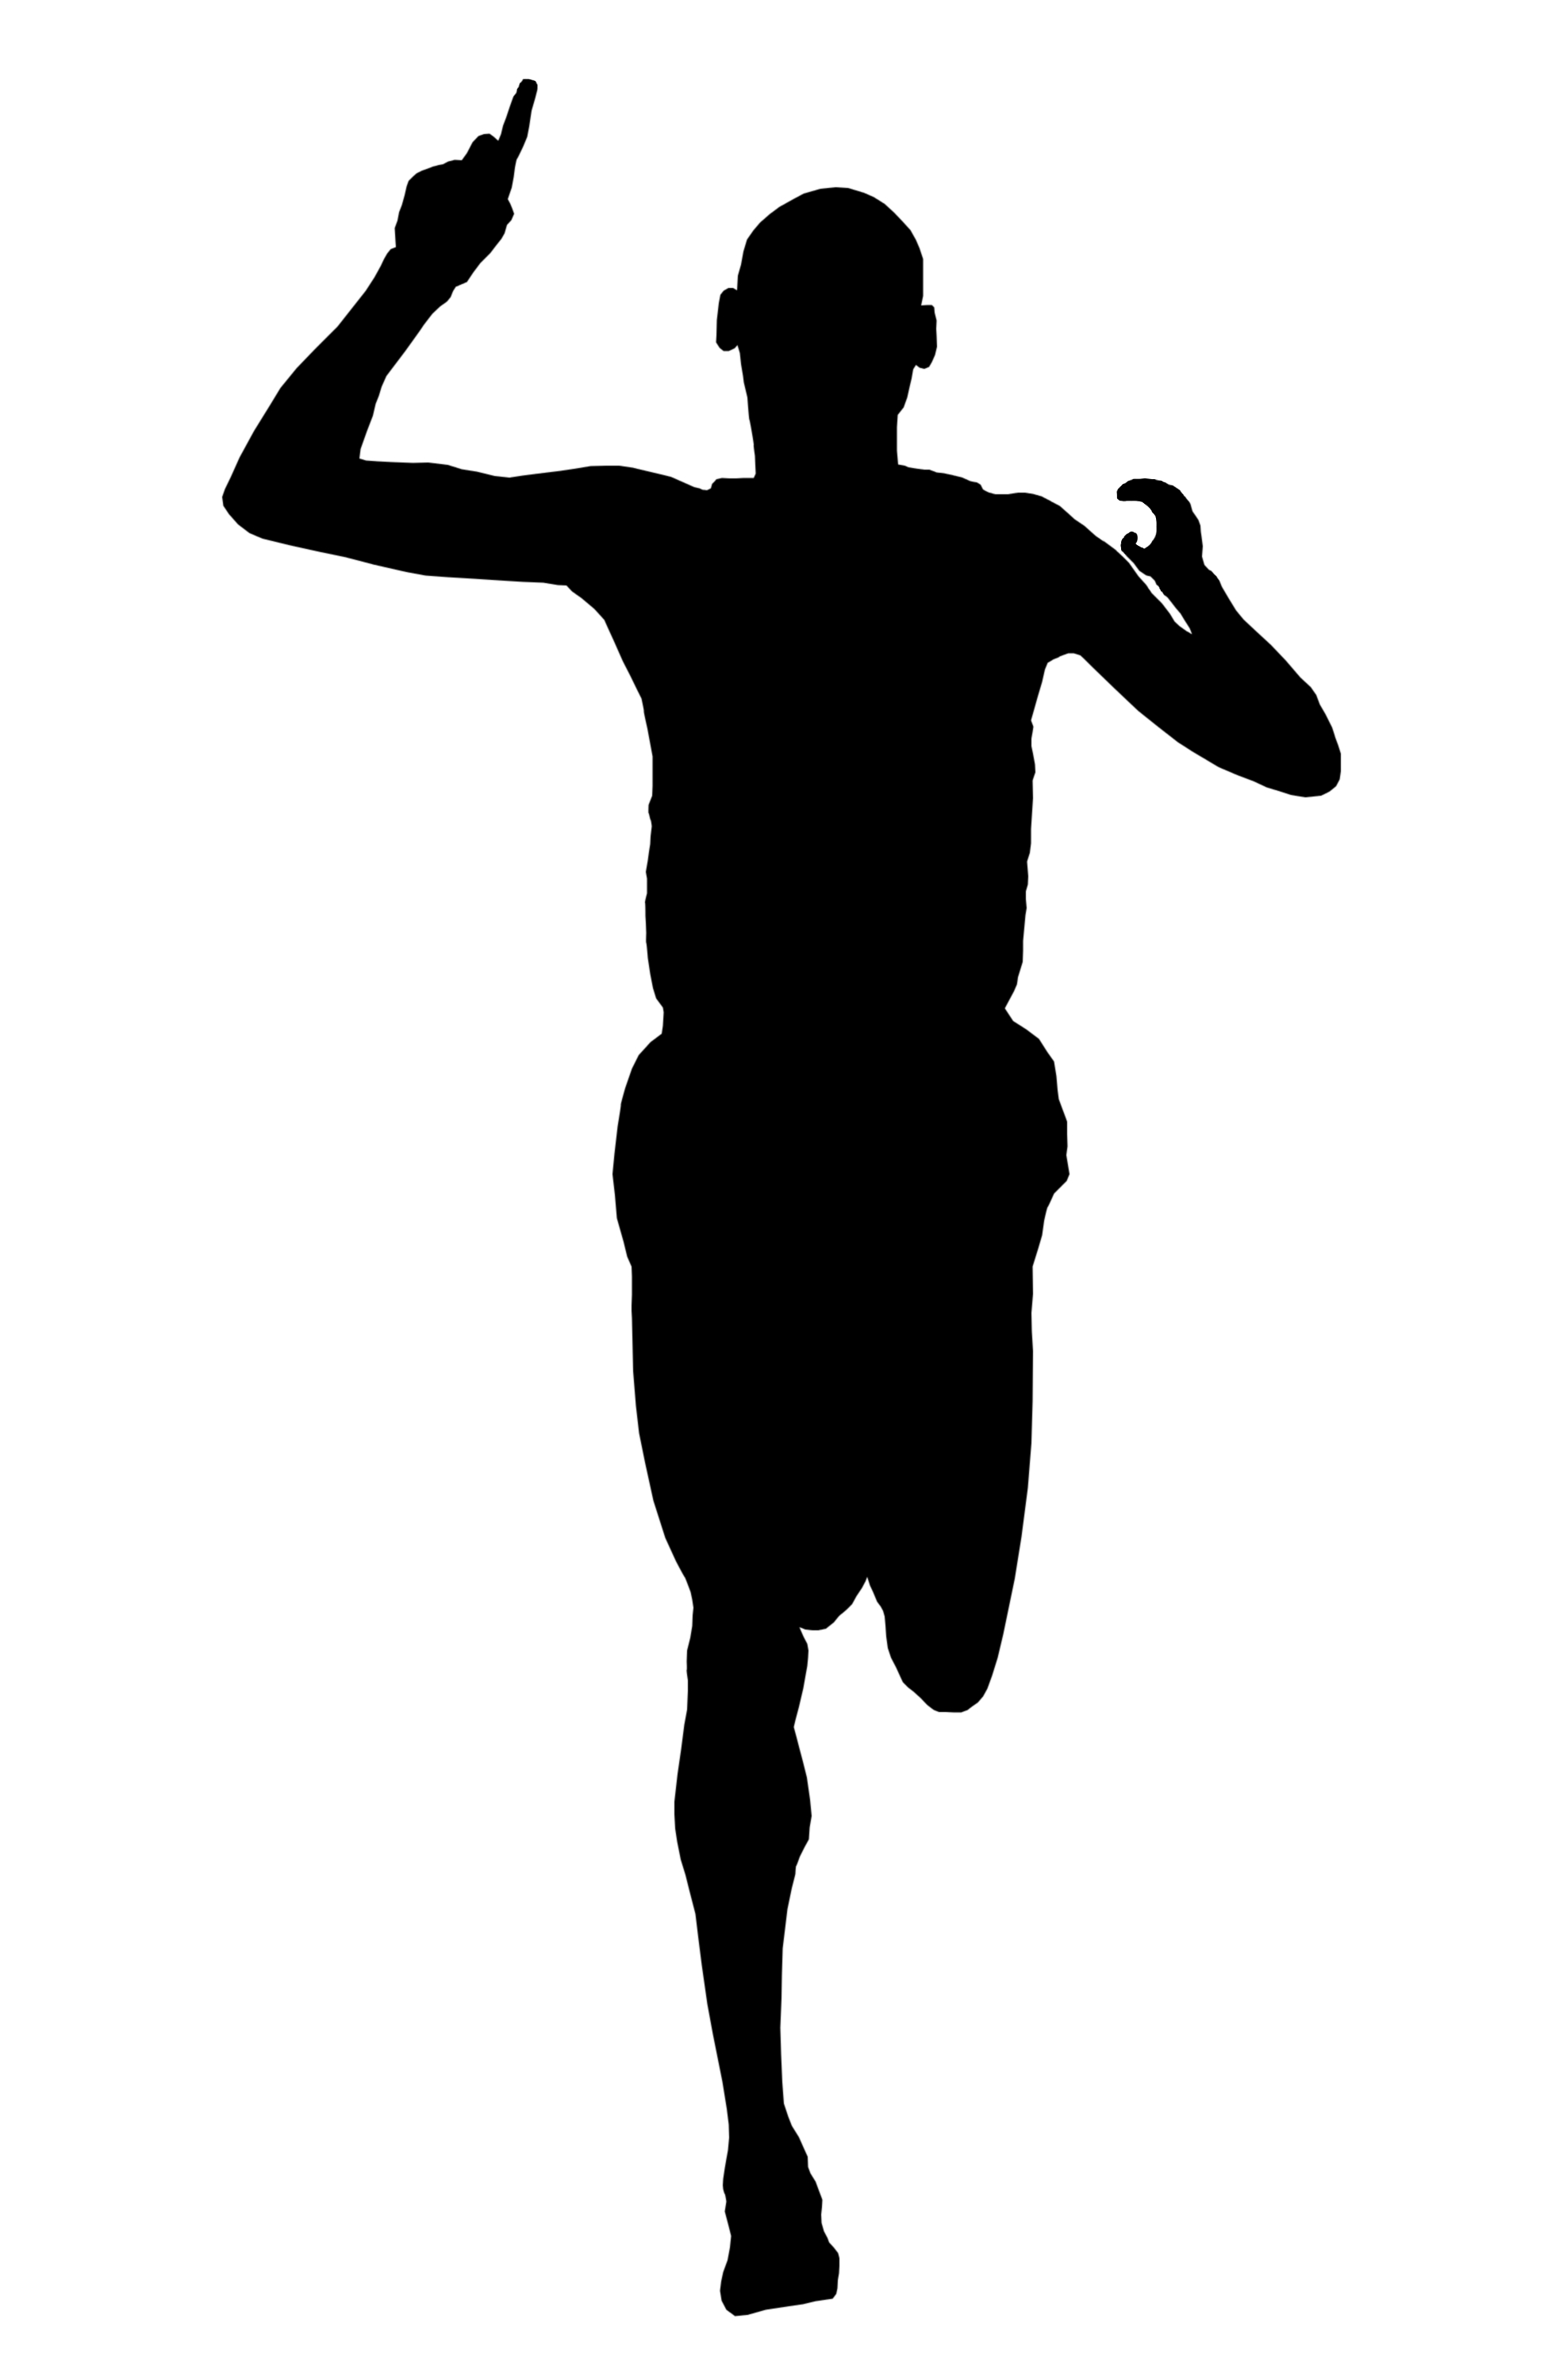 runner silhouette vector at getdrawings com free for personal use rh getdrawings com  marathon runner silhouette vector